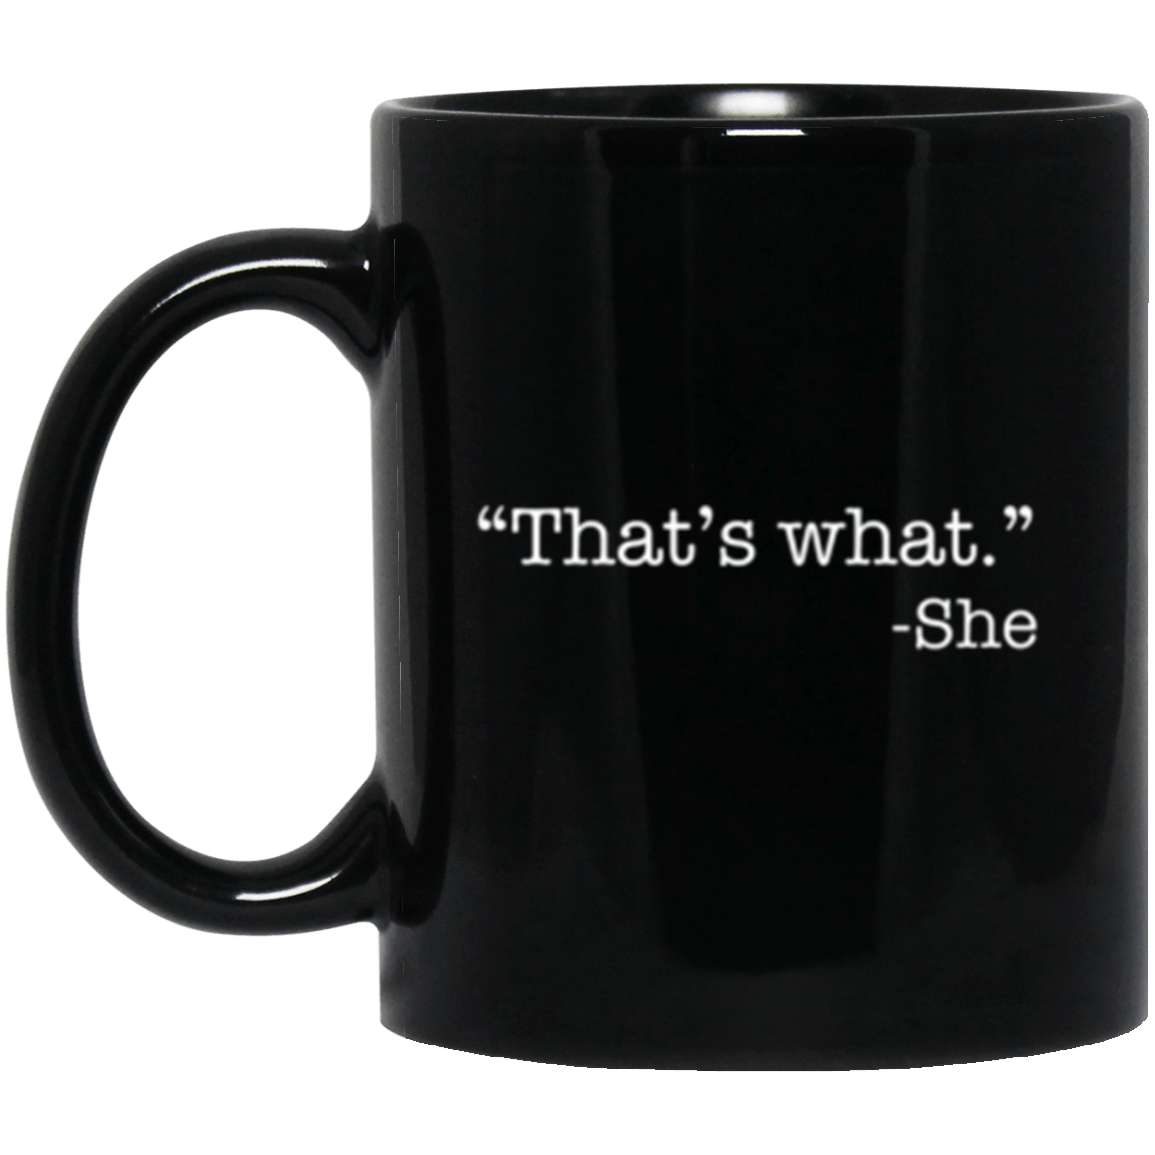 Thats What She Said  Black Mug 11oz (2-sided)